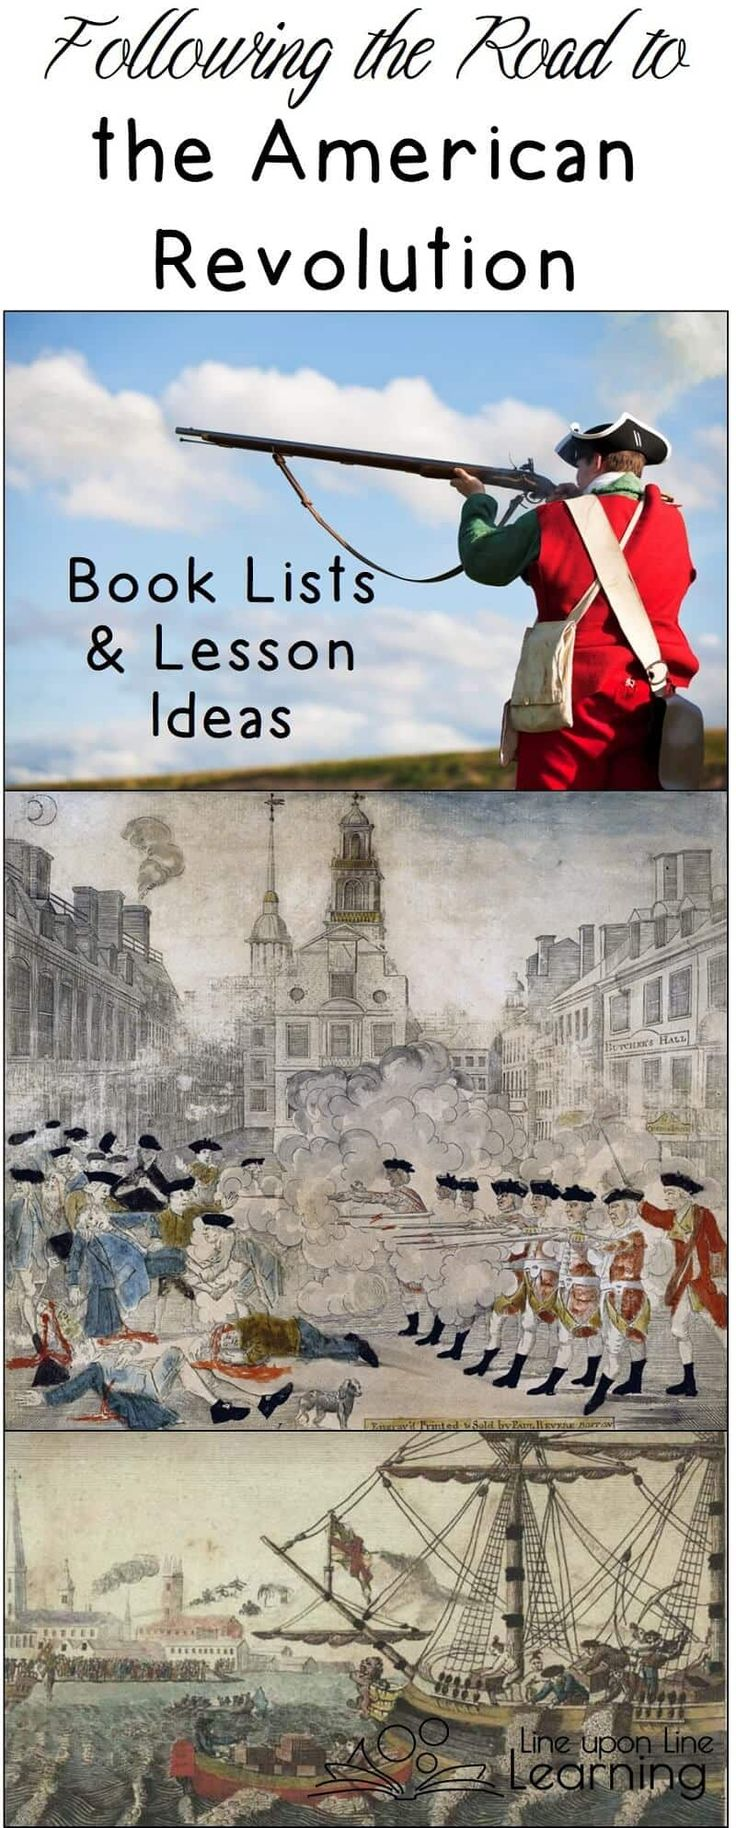 a history of the boston massacre in the american revolutionary era Boston massacre: overview of the boston massacre, the skirmish between british troops and a crowd in boston, massachusetts, on march 5, 1770 widely publicized, the violent event contributed.